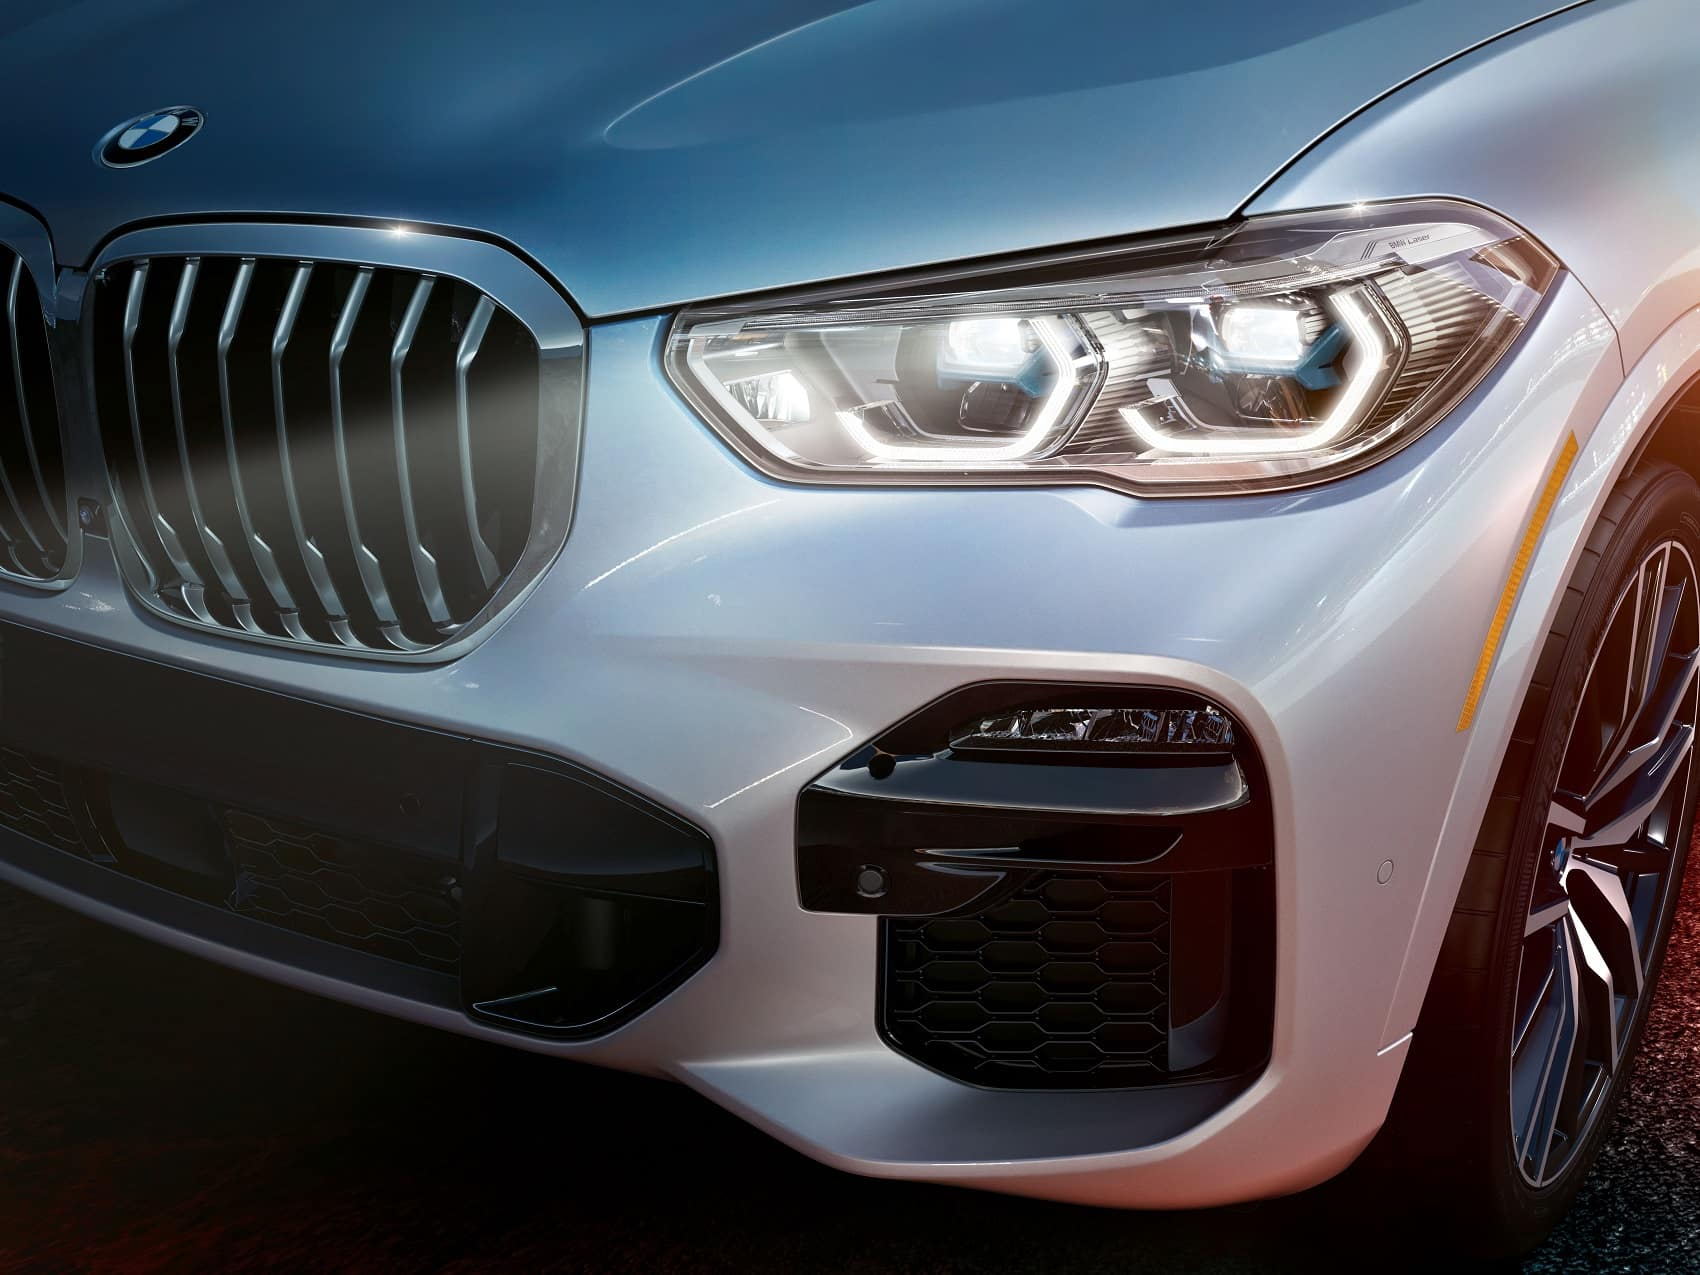 Bmw Dealer Near Me >> Bmw Dealer Near Me Galleria Bmw